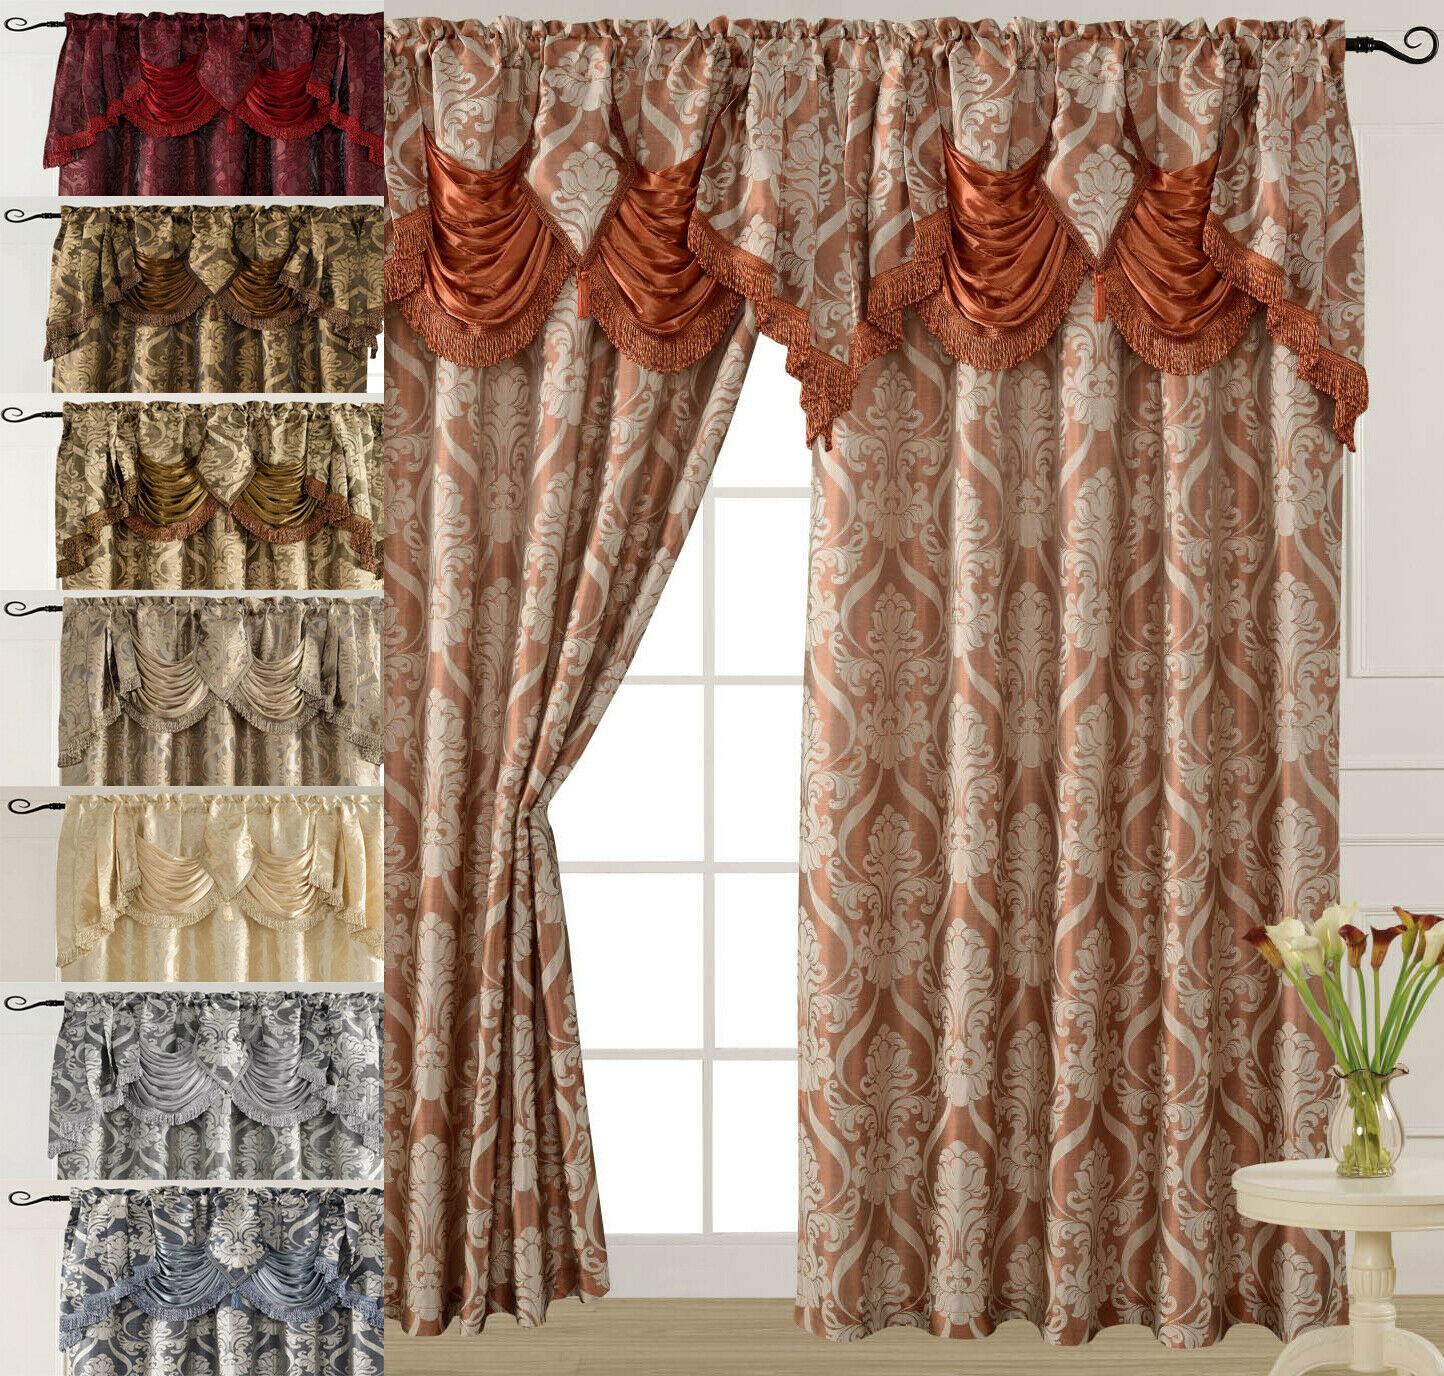 Luxury Jacquard Curtain Panel with Attached Waterfall Valanc